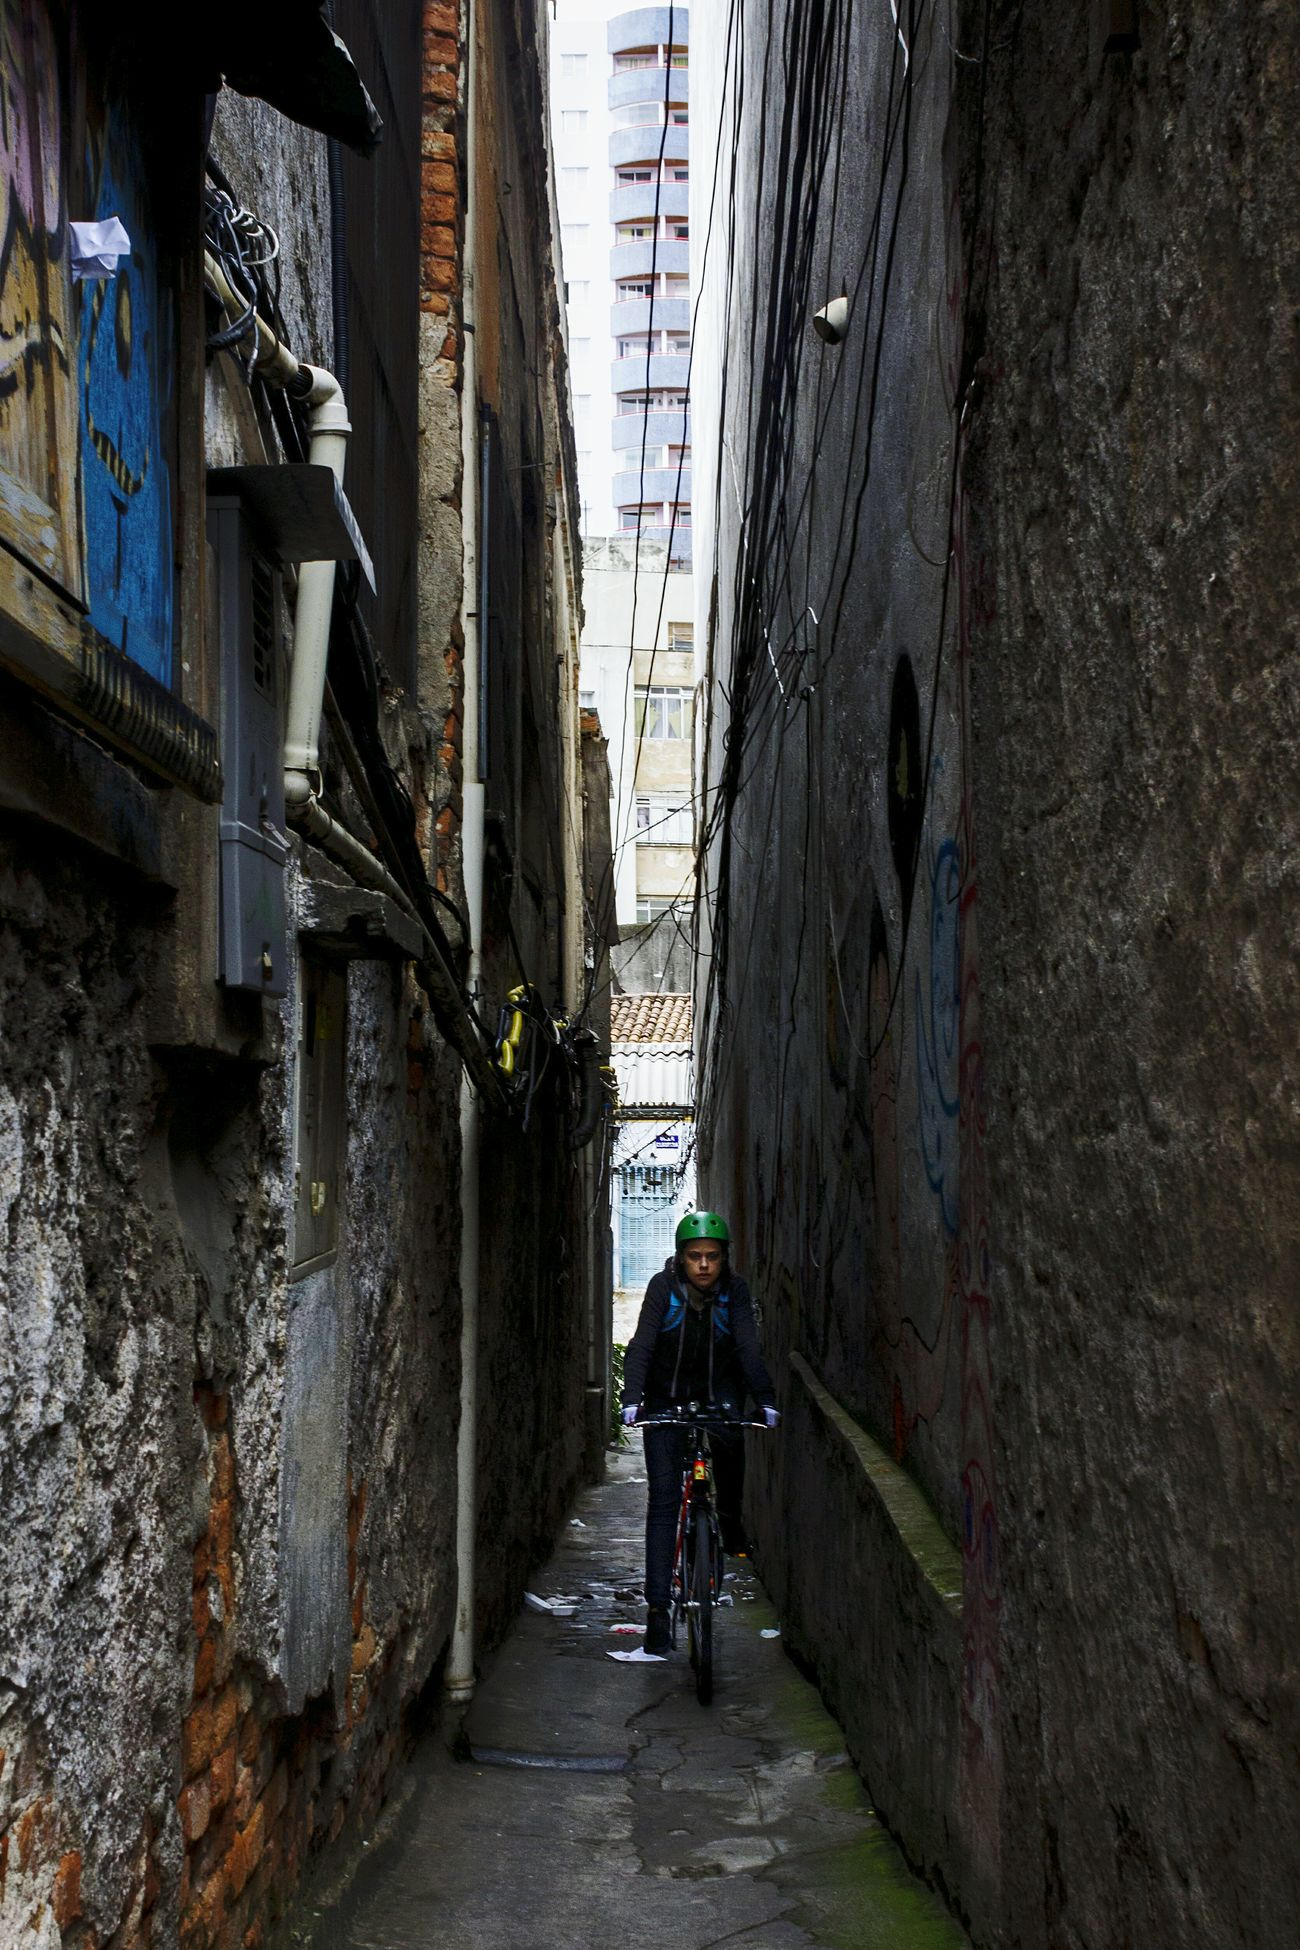 narrow way Everybodystreet Street Photography Streetphotography Discover Your City City Life Loneliness The Changing City Street Bike Showcase: November